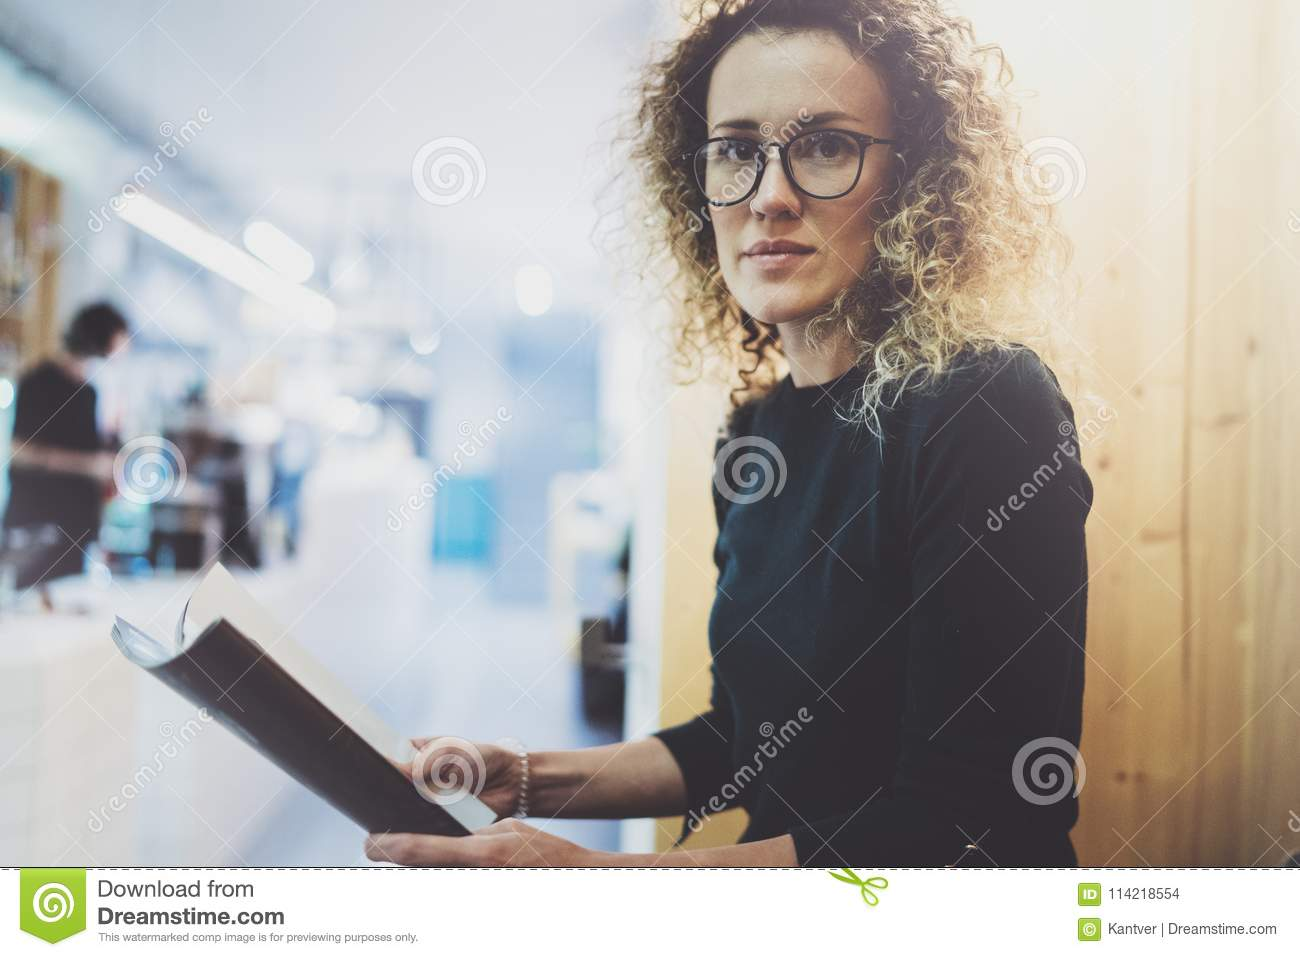 6962553c1b Charming fashionable woman with eyes glasses reading magazine sitting  indoor in urban cafe.Casual portrait